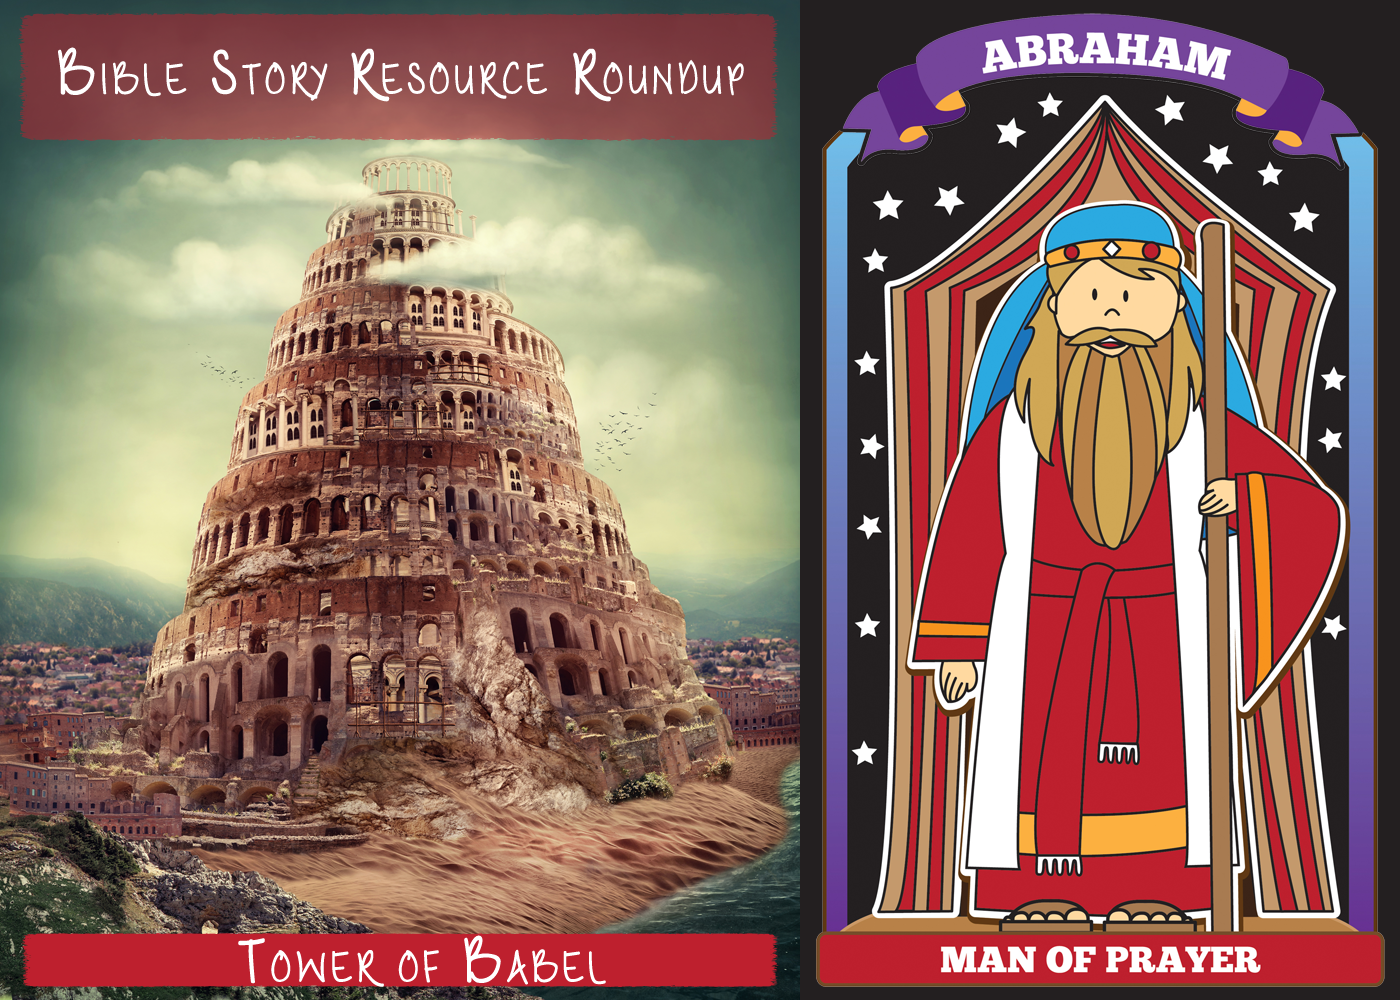 bible story resource roundup u2013 tower of babel abraham christian